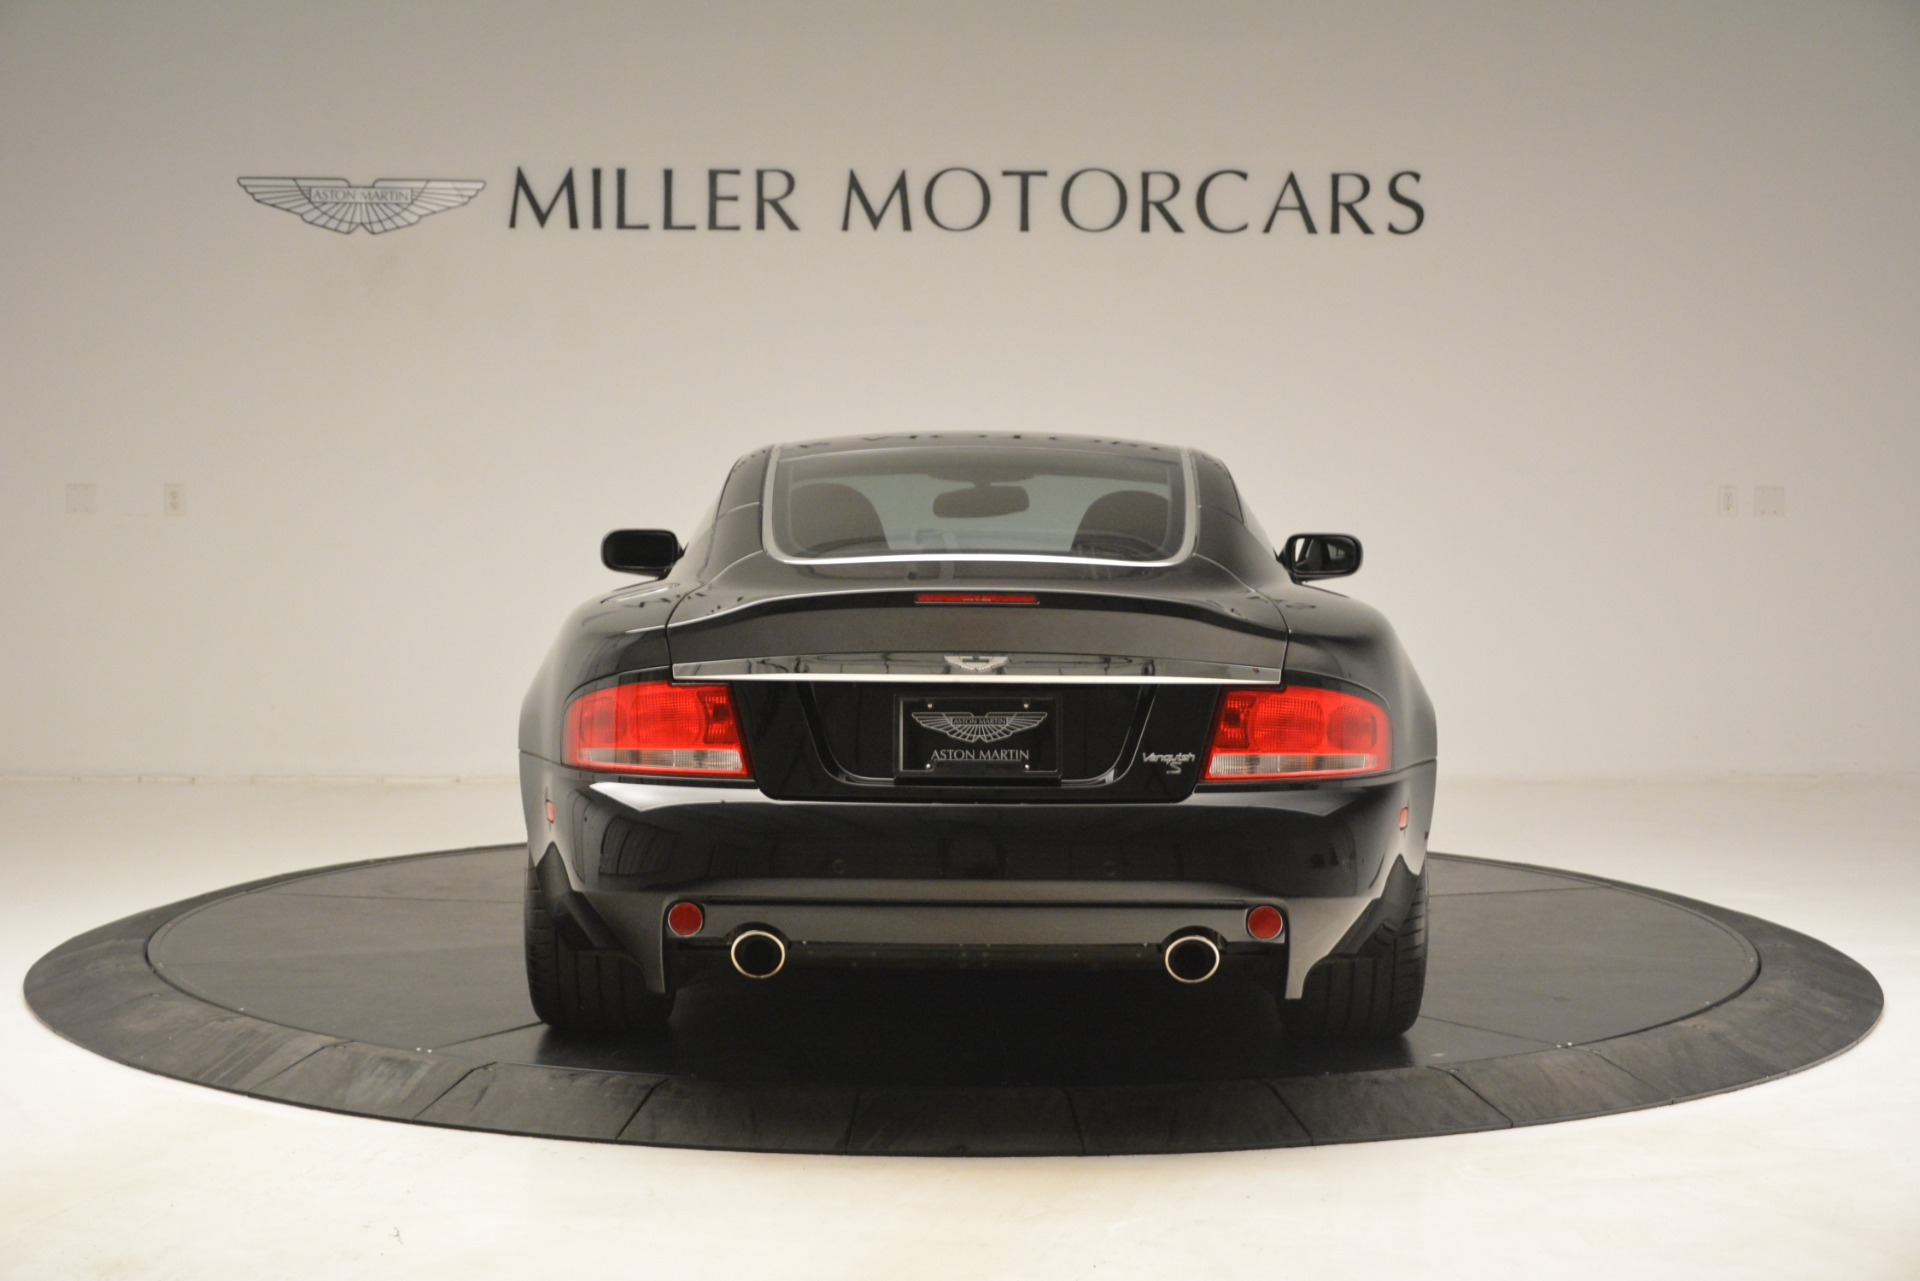 Used 2005 Aston Martin V12 Vanquish S Coupe For Sale In Westport, CT 3218_p6